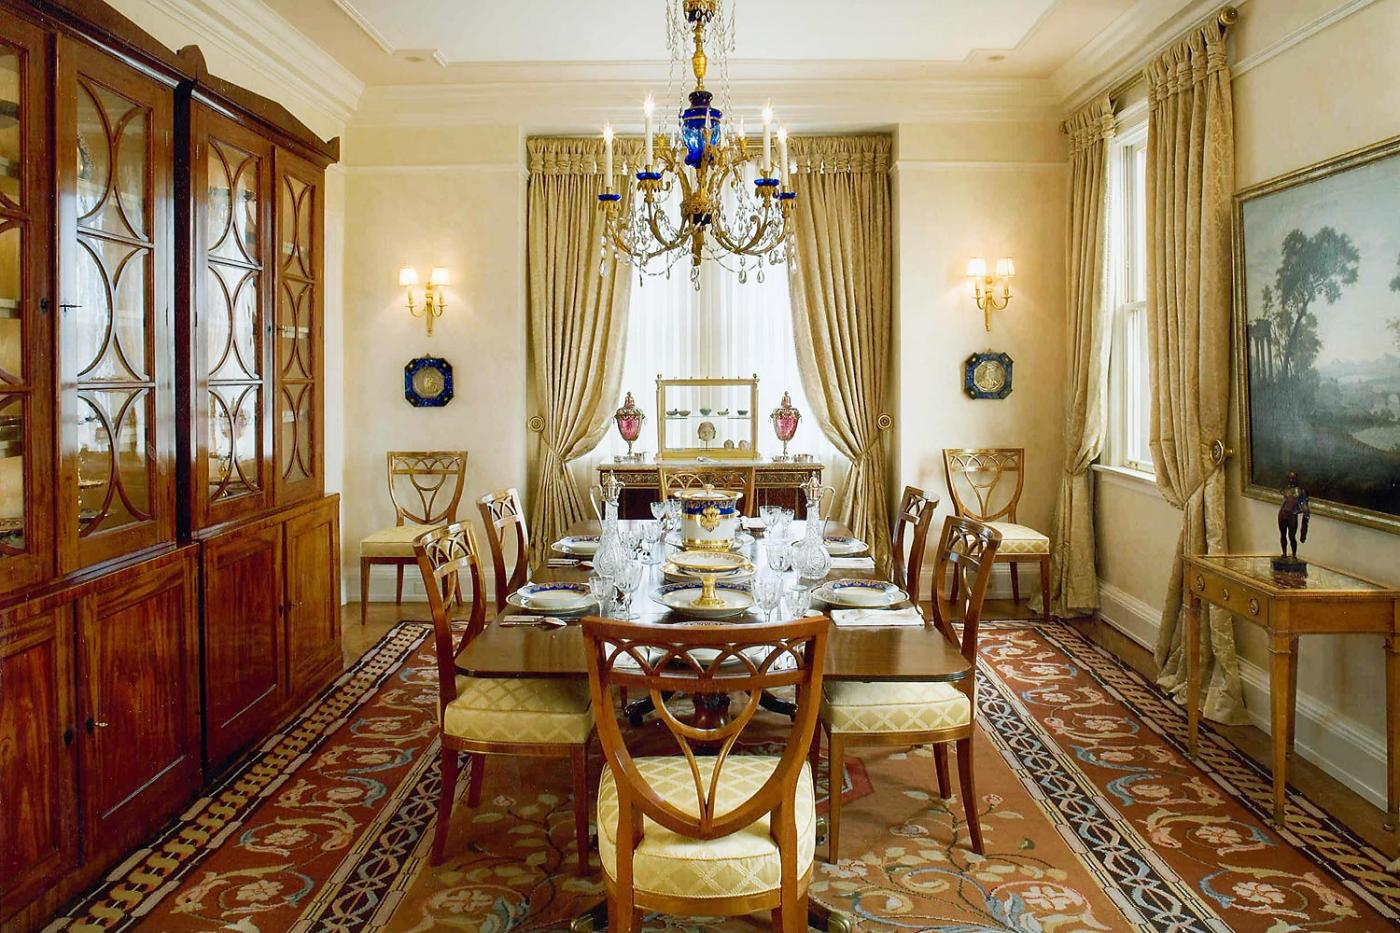 A serene penthouse perched high above the city is the setting for a  dazzling collection of Classical antiquities, 18th century antique  furniture, ...